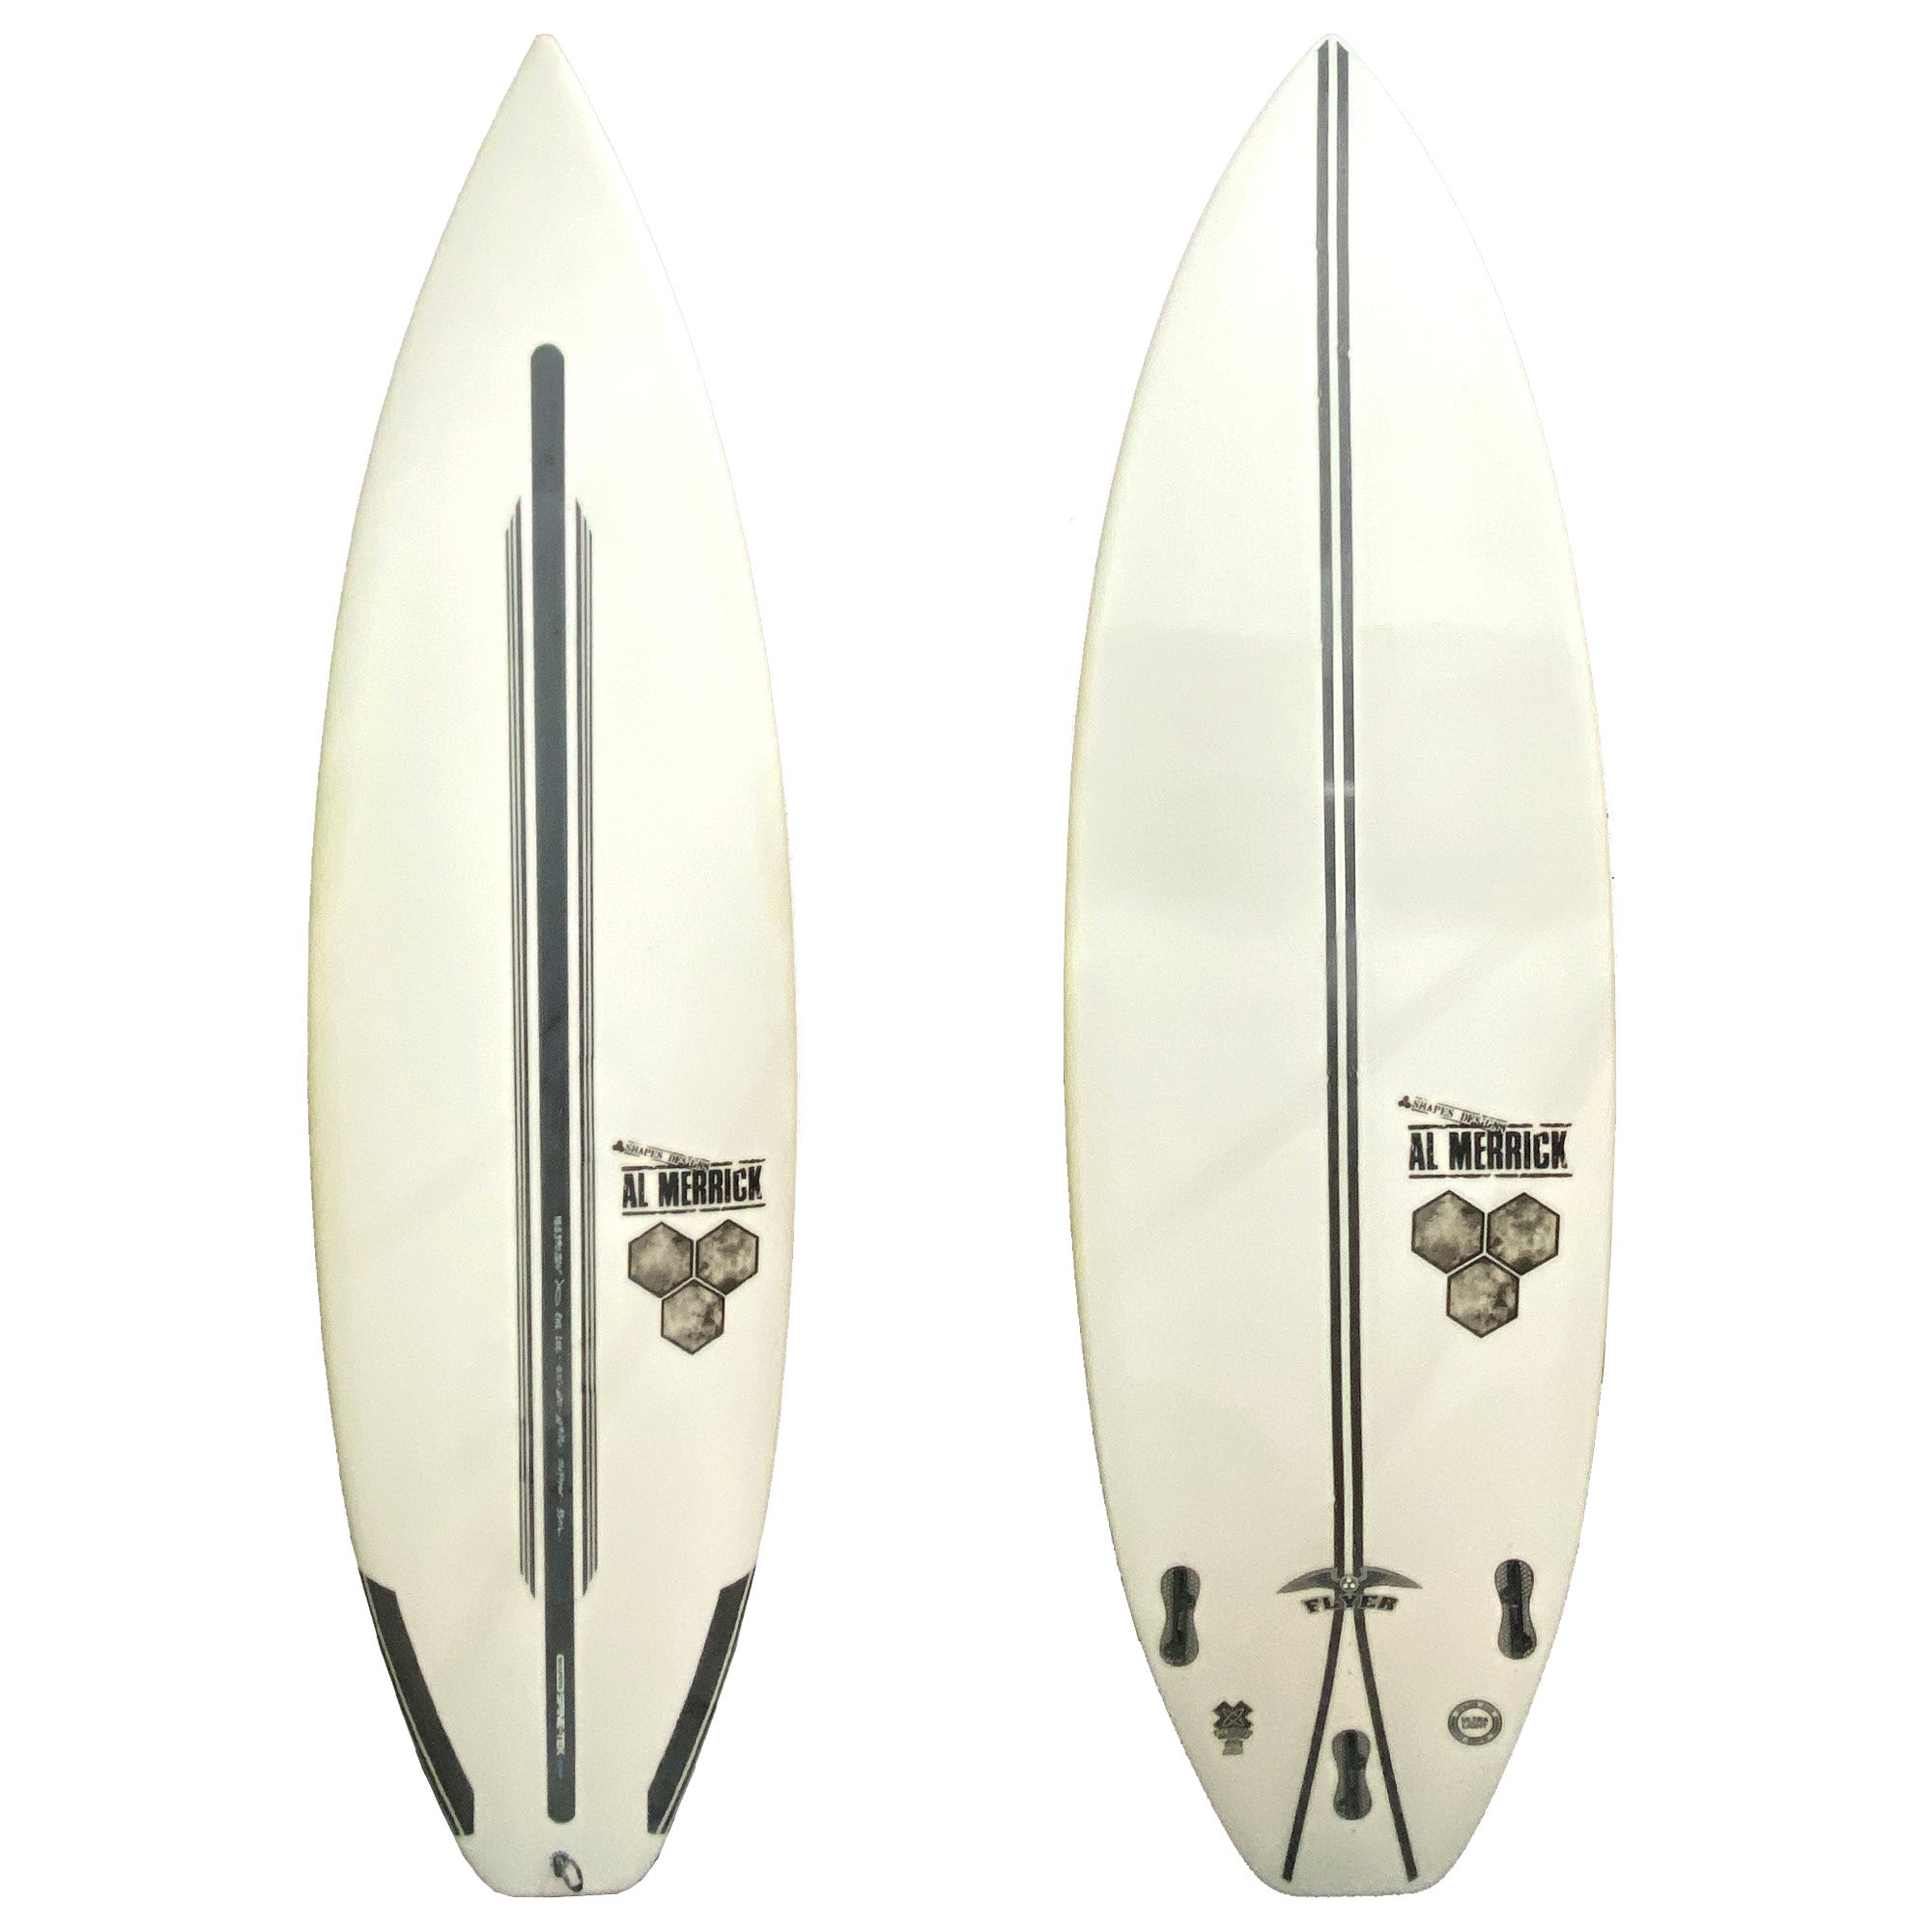 Channel Islands OG Flyer Spine-Tek Discount Surfboard - FCS II